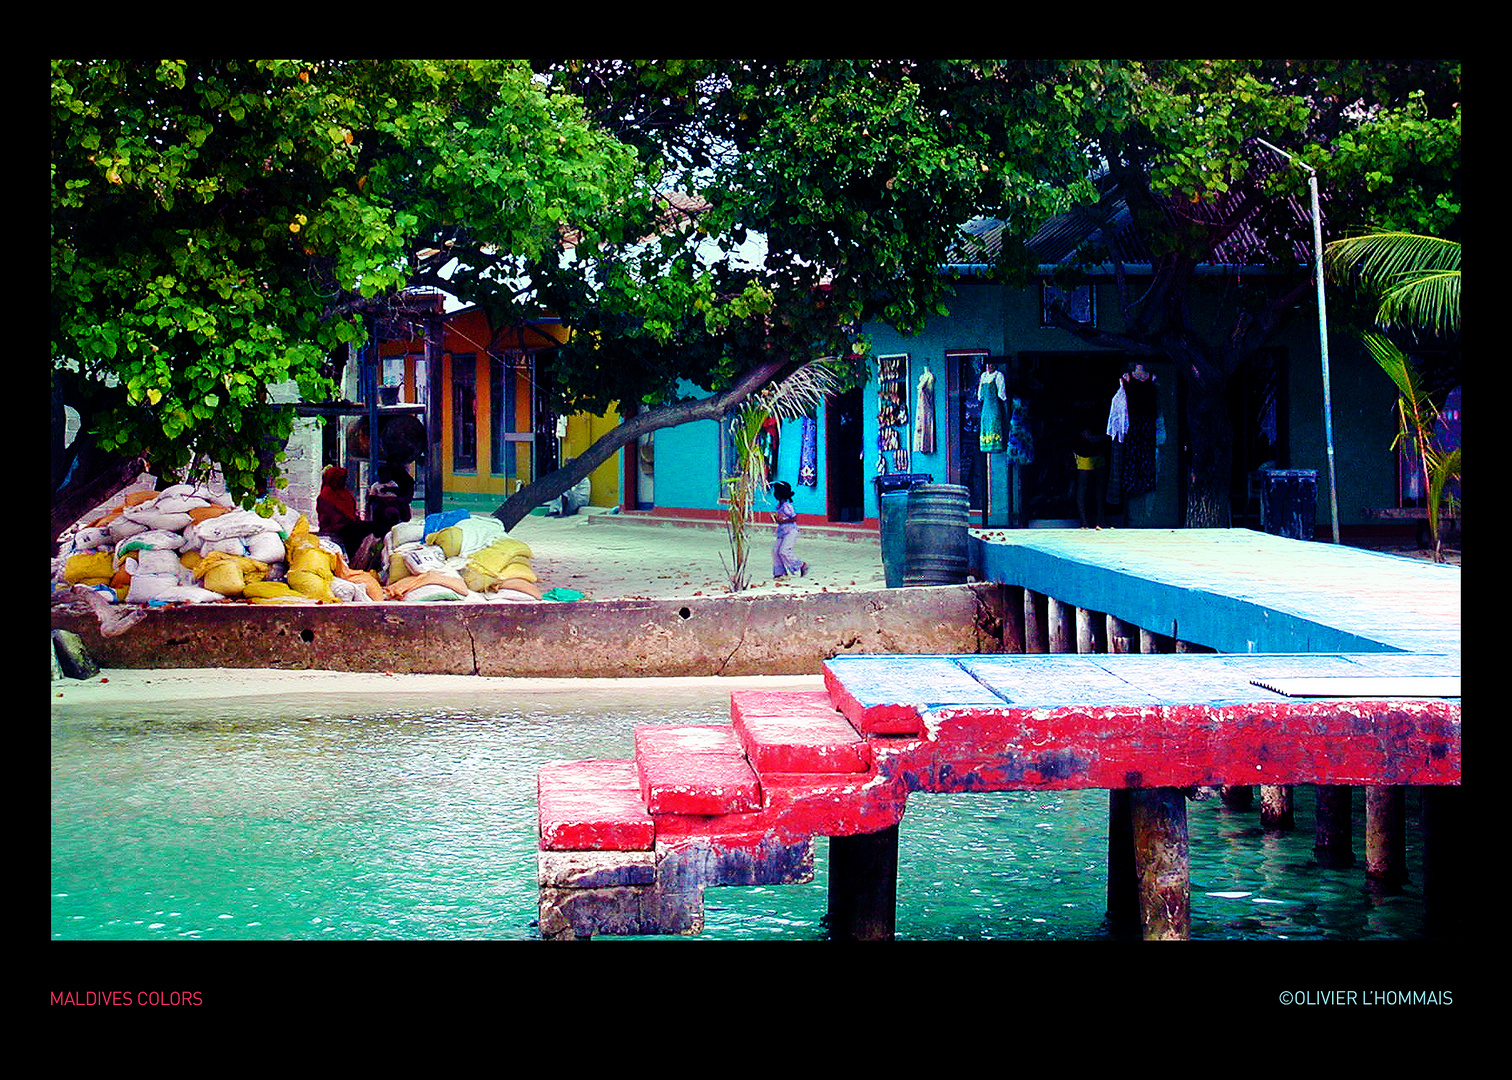 Maldives Colors